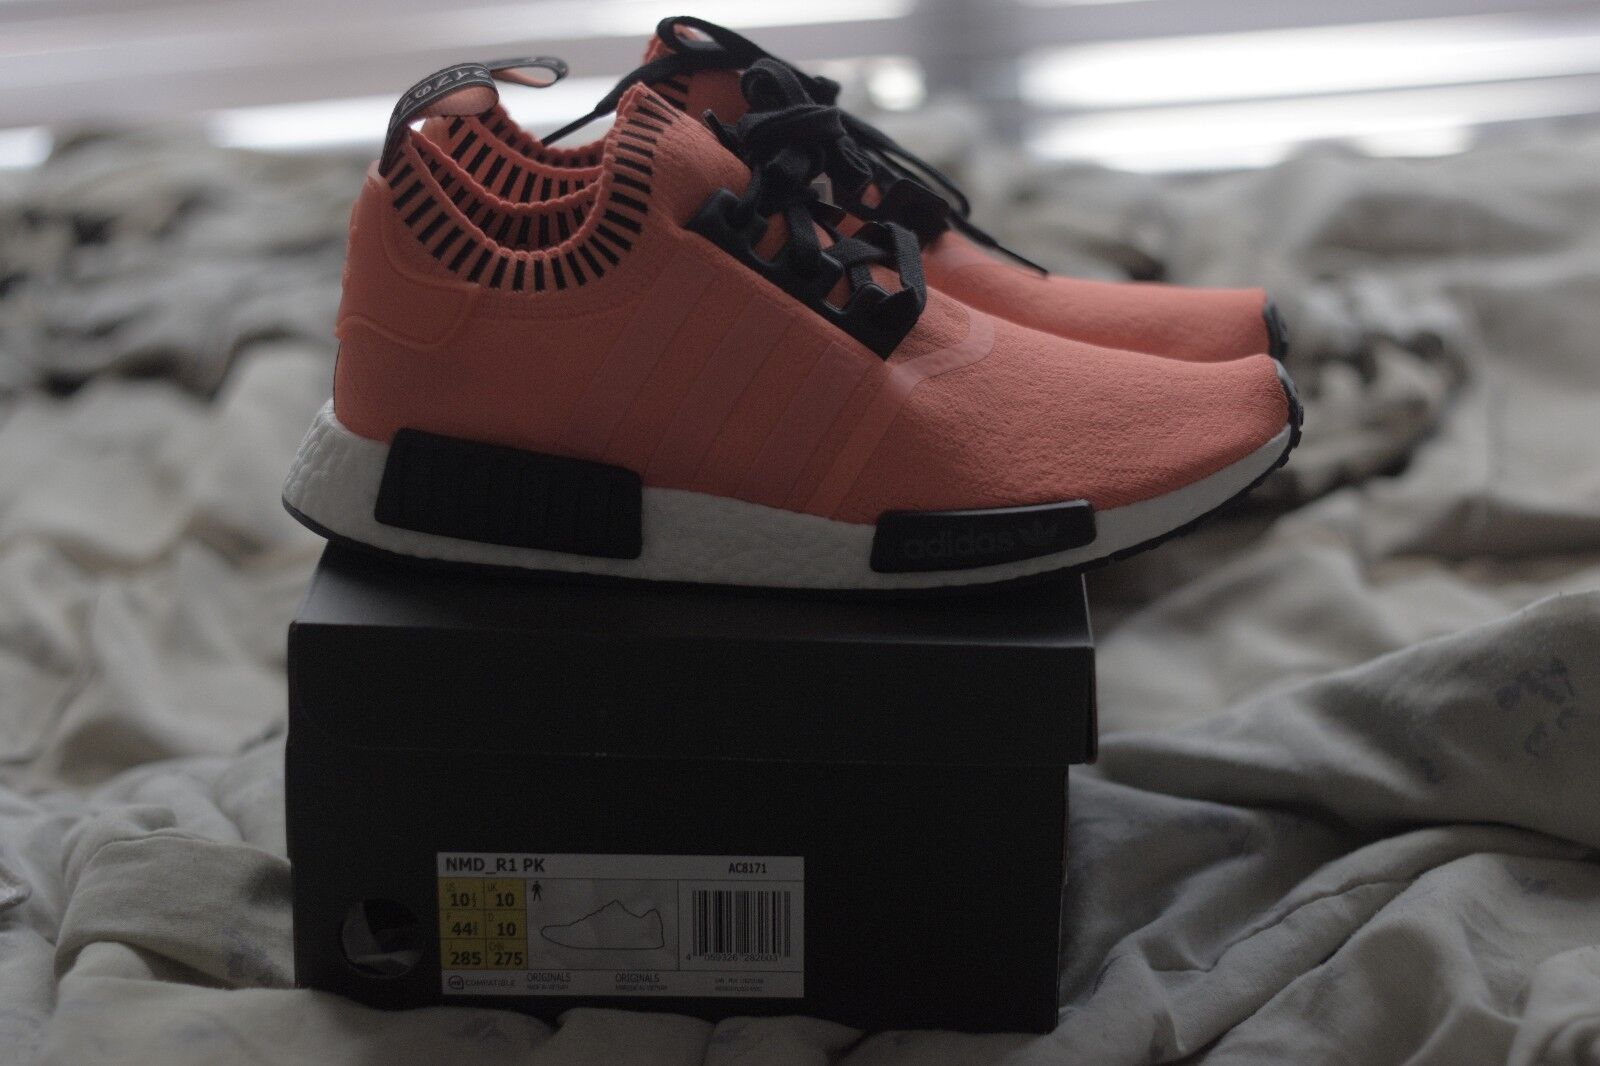 New Adidas NMD R1 Noise